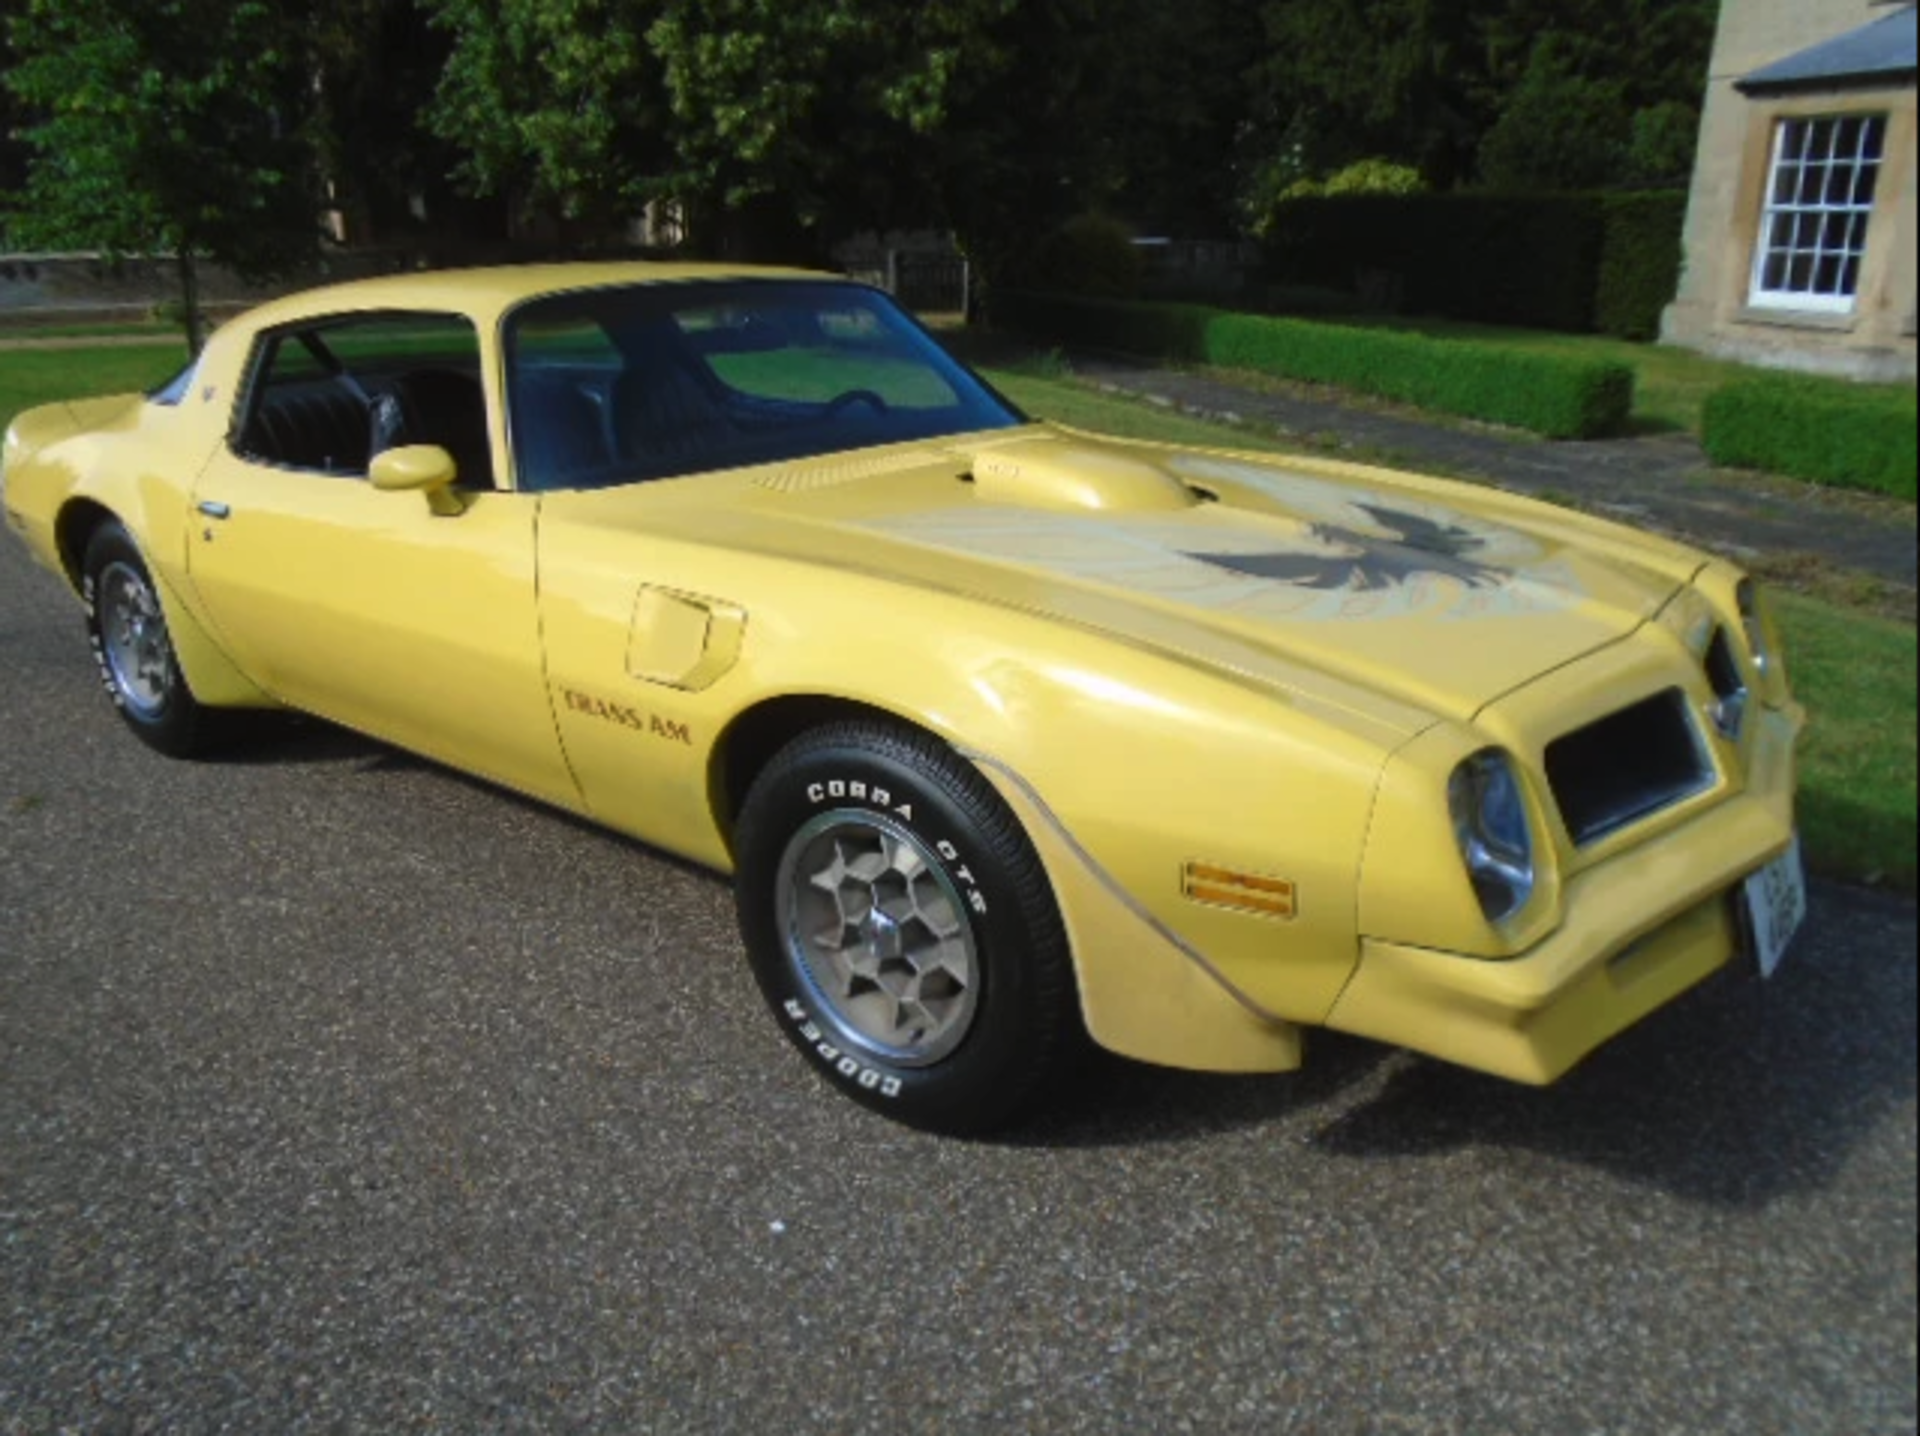 Lot 15 - 1976 Pontiac Firebird Trans-Am